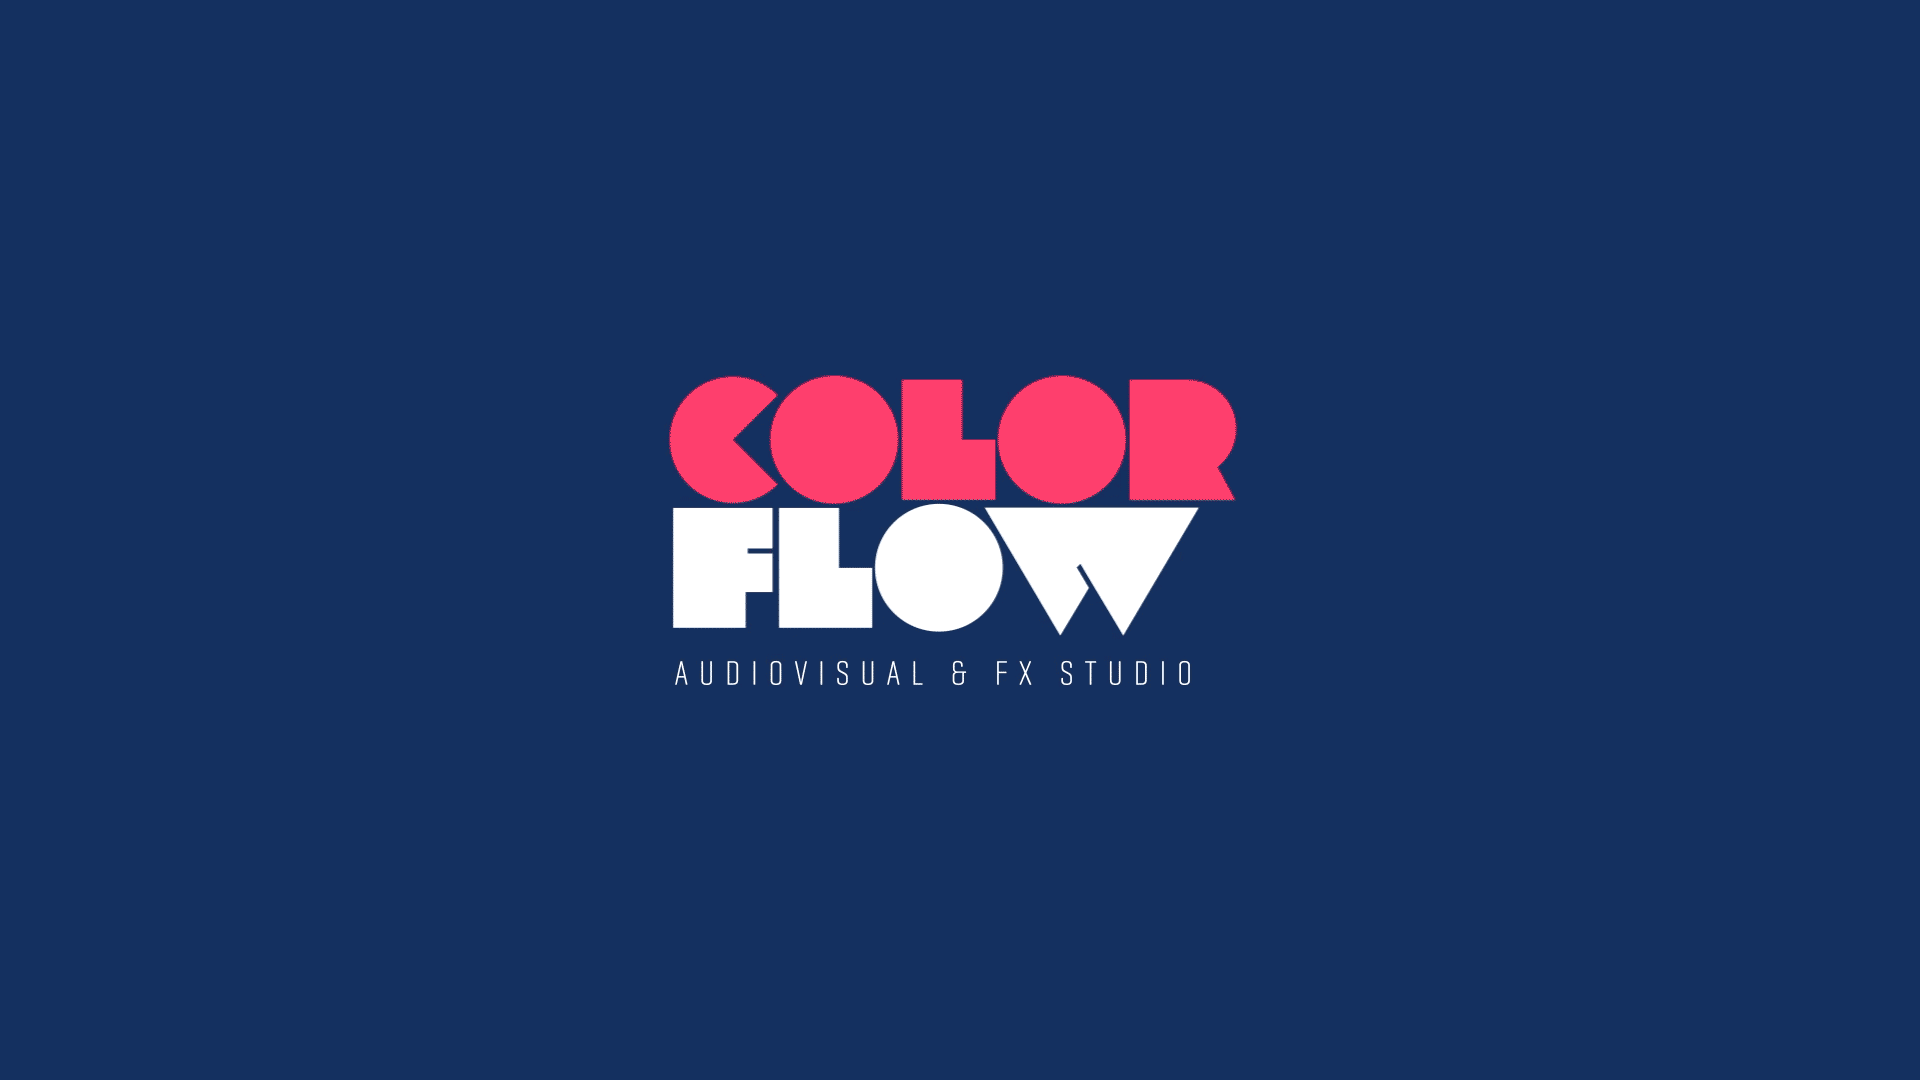 Diseño Marca y Motion Graphics Vídeo Corporativo ColorFlow